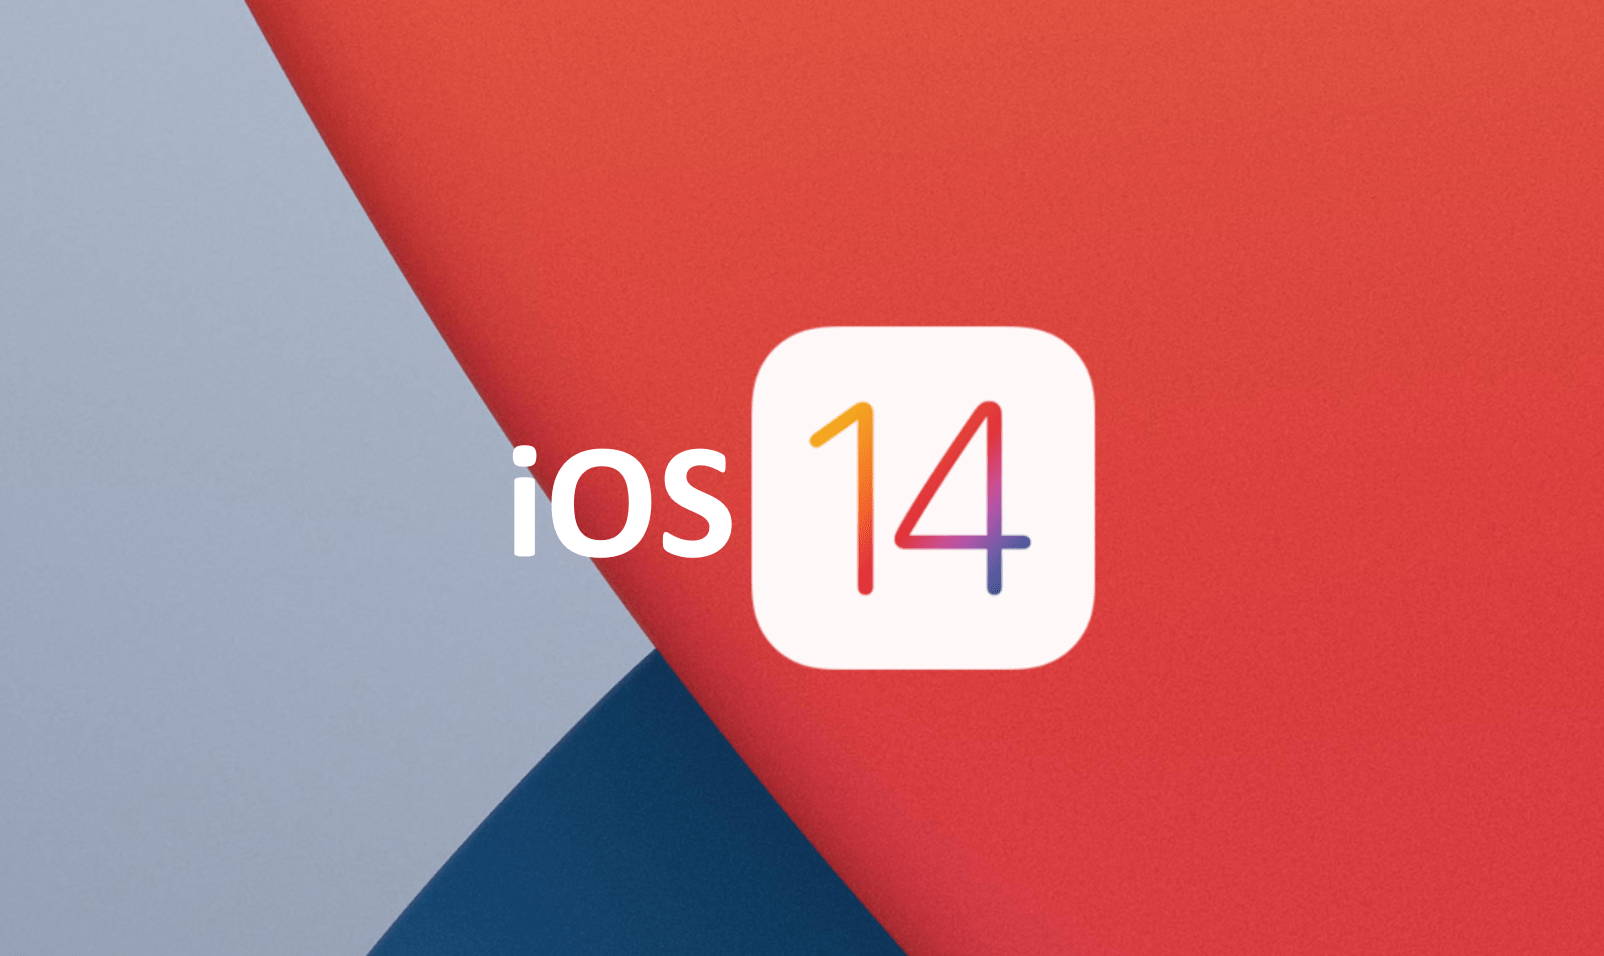 What's new in iOS 14?